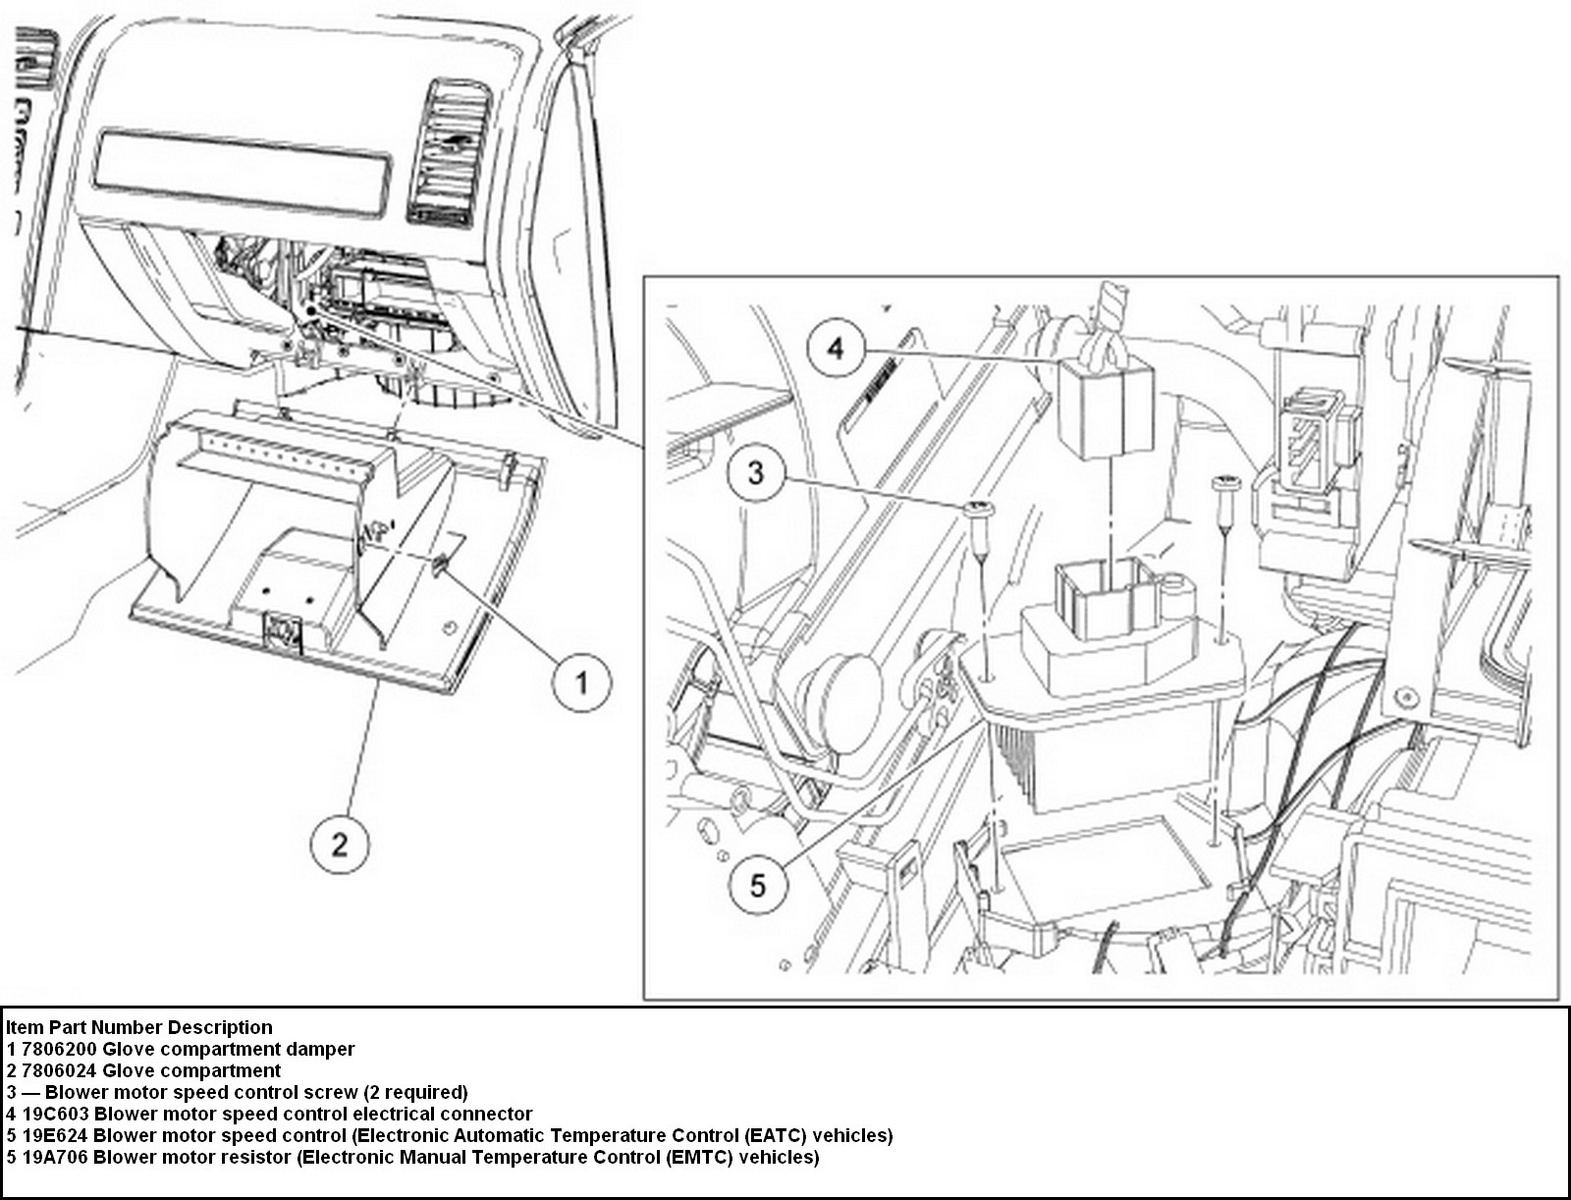 Wiring Schematic 2006 F250 Interior 2007 Ford Edge Fuse Box Diagram Simple Electrical Questions How Do You Remove And Replace Install A Blower F 250